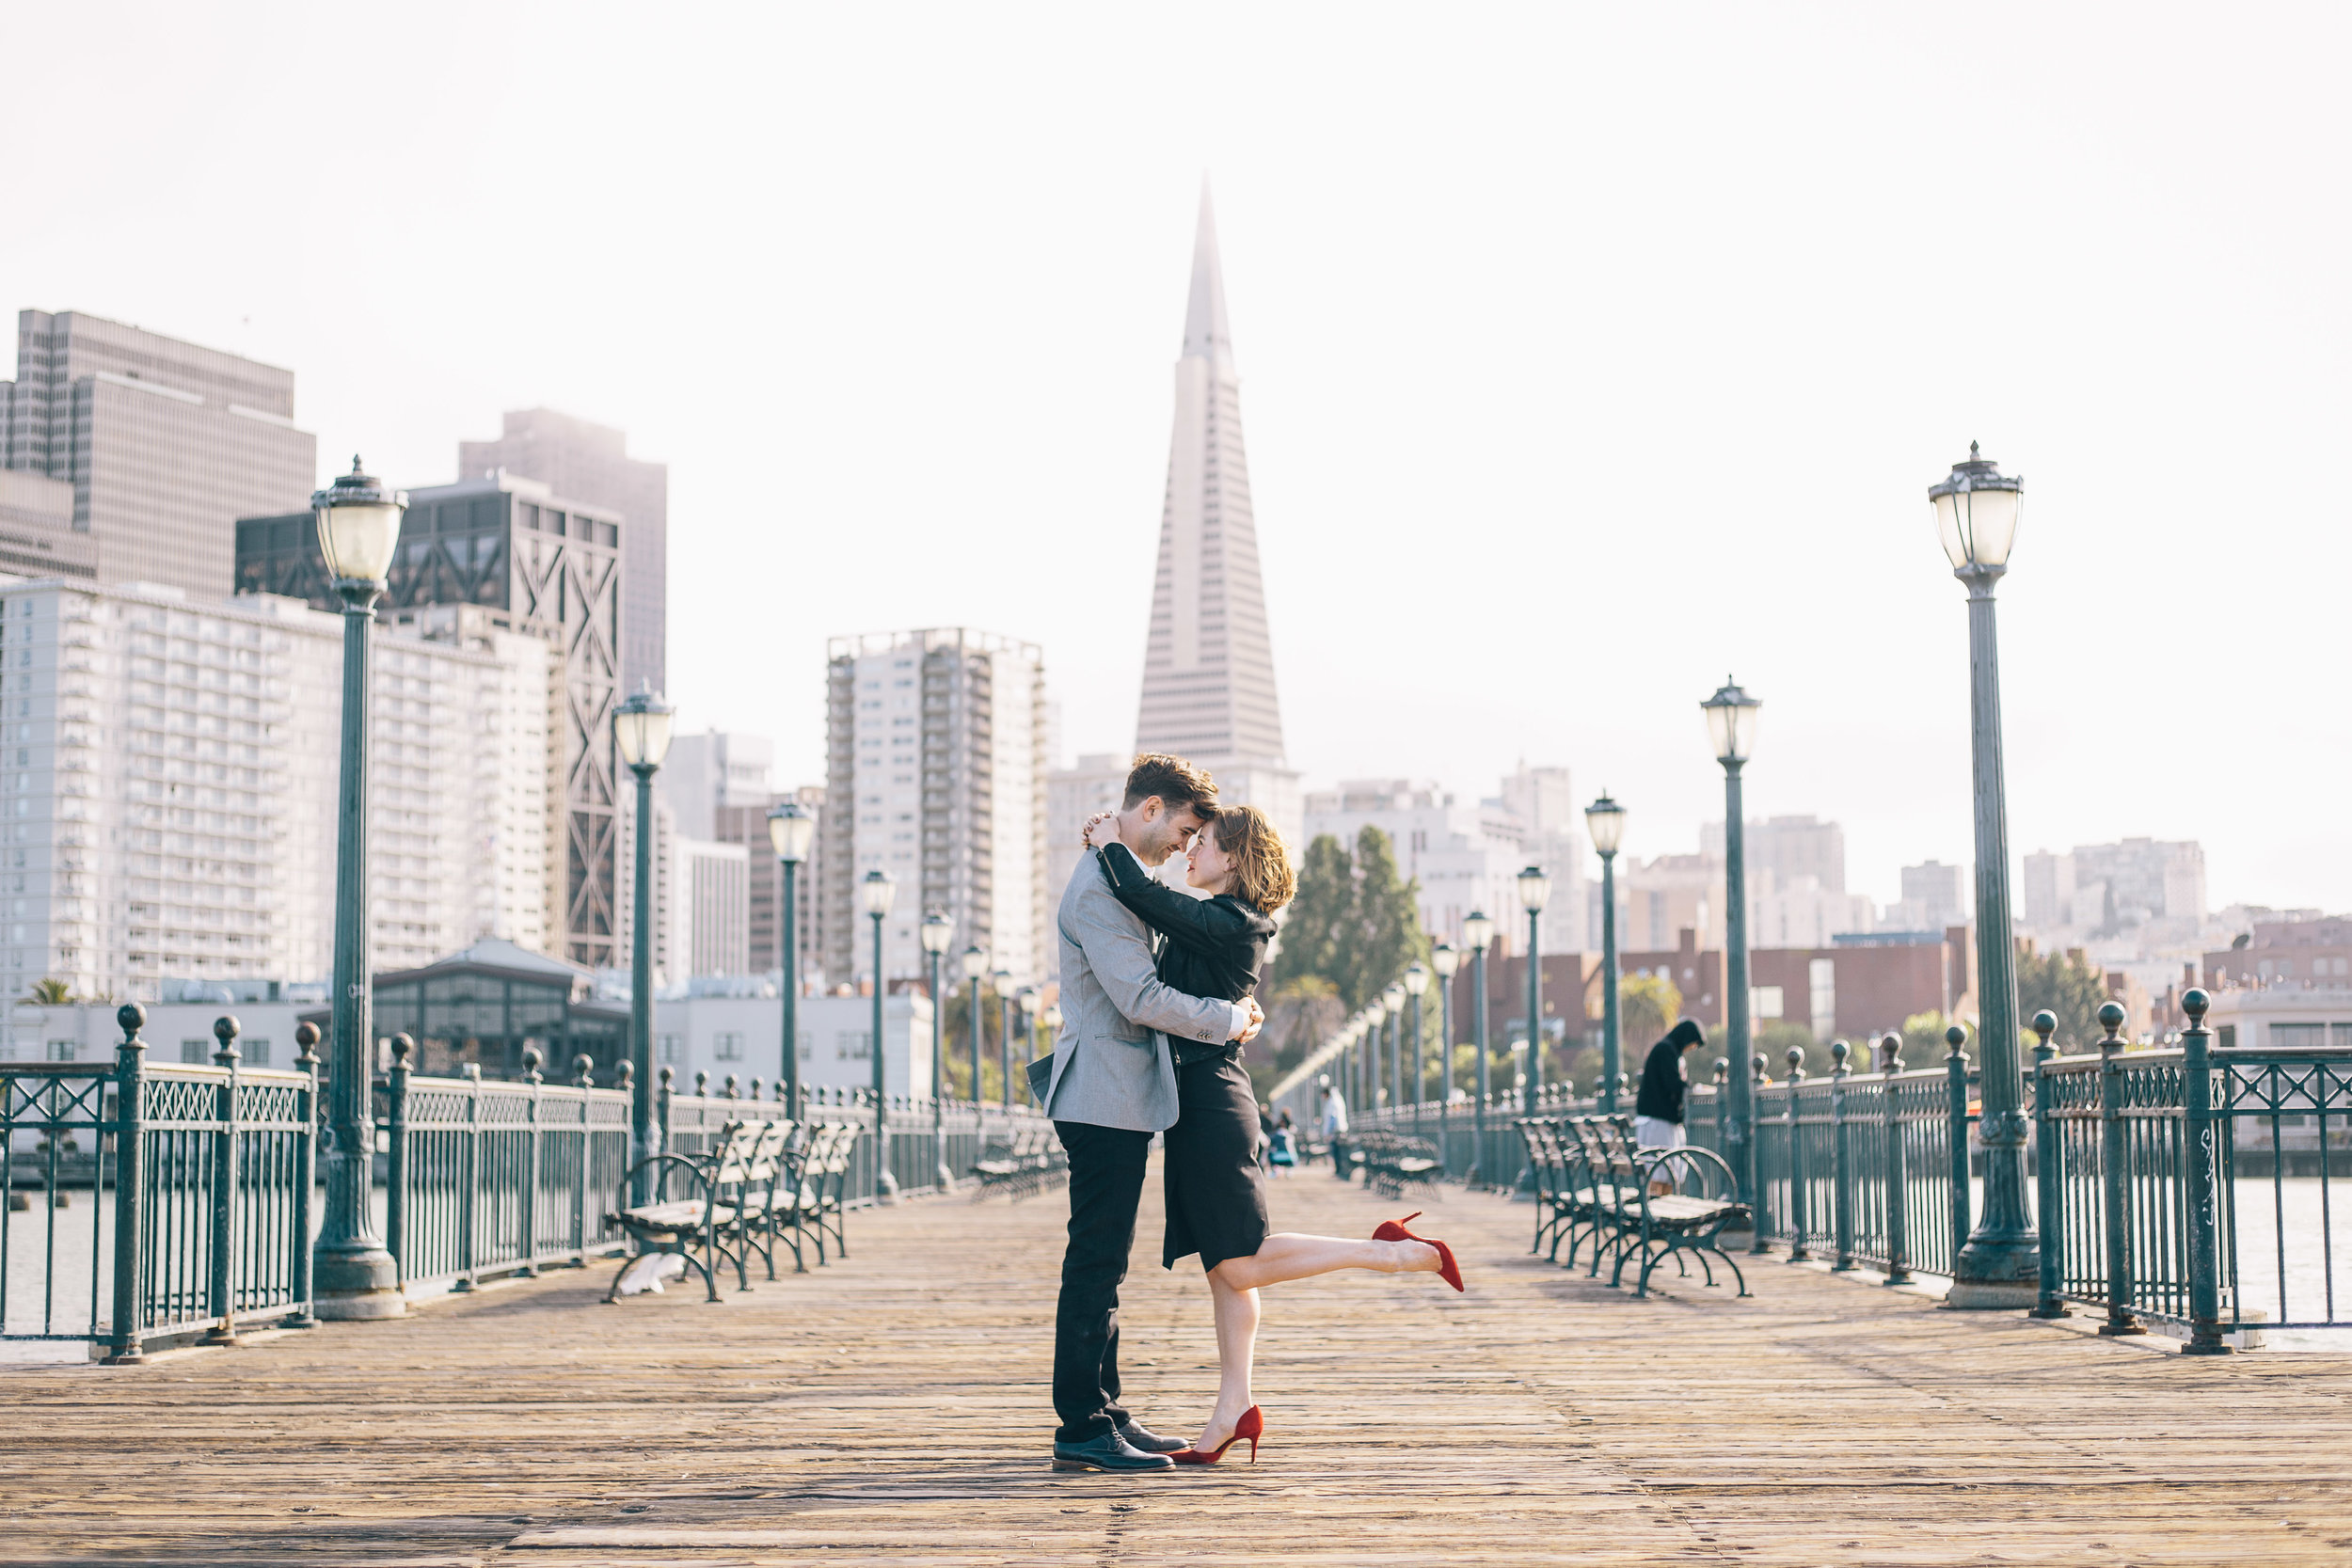 Pier 7 Engagement Photos by JBJ Pictures - Pre-wedding Photo Session in San Francisco (4).jpg